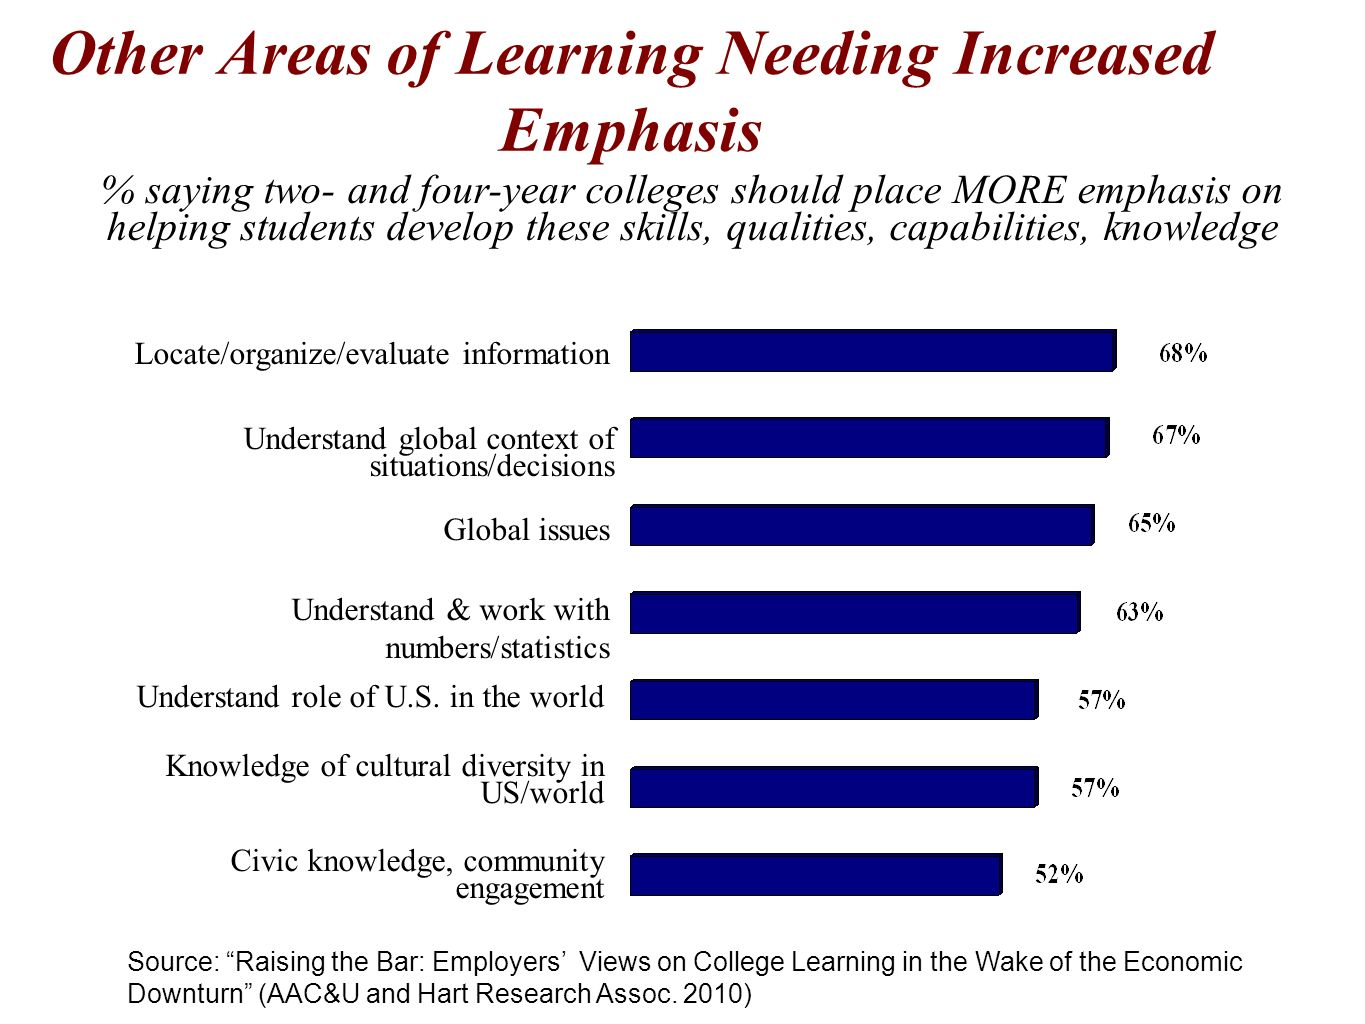 Other Areas of Learning Needing Increased Emphasis